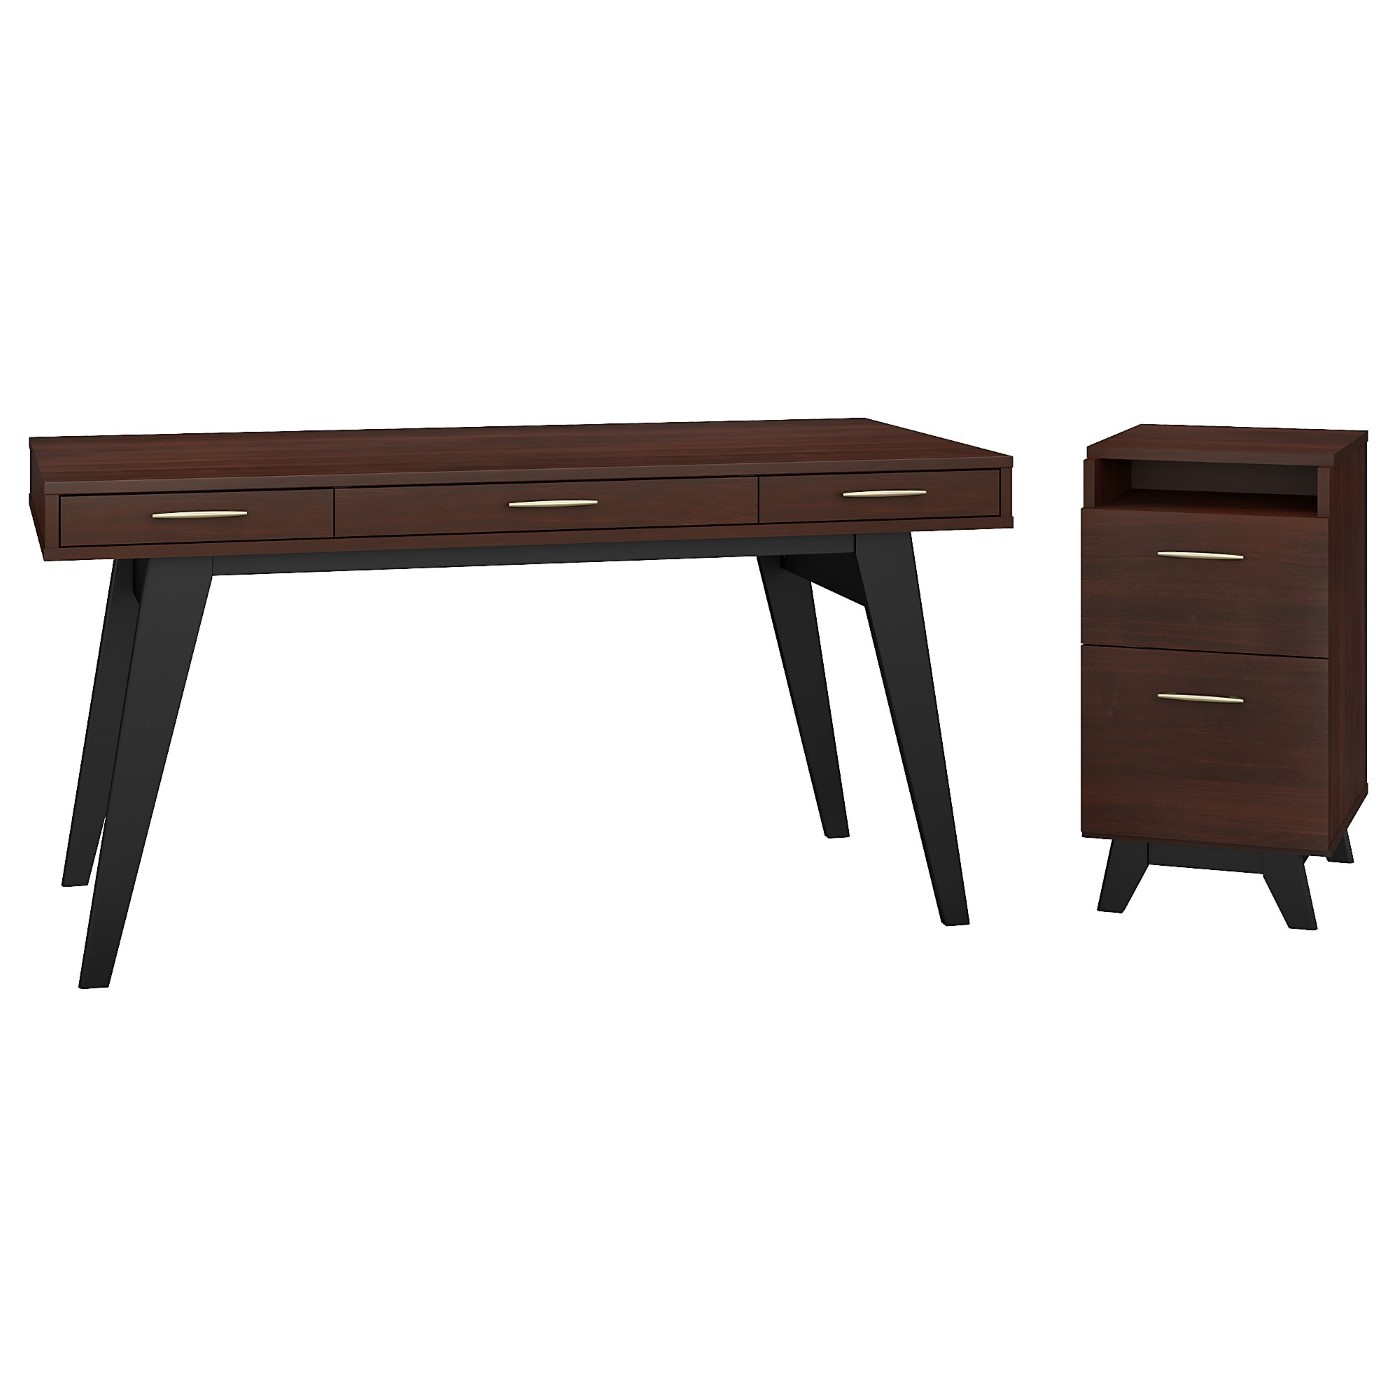 </b></font><b>The kathy ireland� Centura 60W x 30D Writing Desk with 2 Drawer File Cabinet is Sustainable Eco Friendly Furniture. Includes Free Shipping! 30H x 72L x 72W</b></font>  VIDEO BELOW. <p>RATING:&#11088;&#11088;&#11088;&#11088;&#11088;</b></font></b>